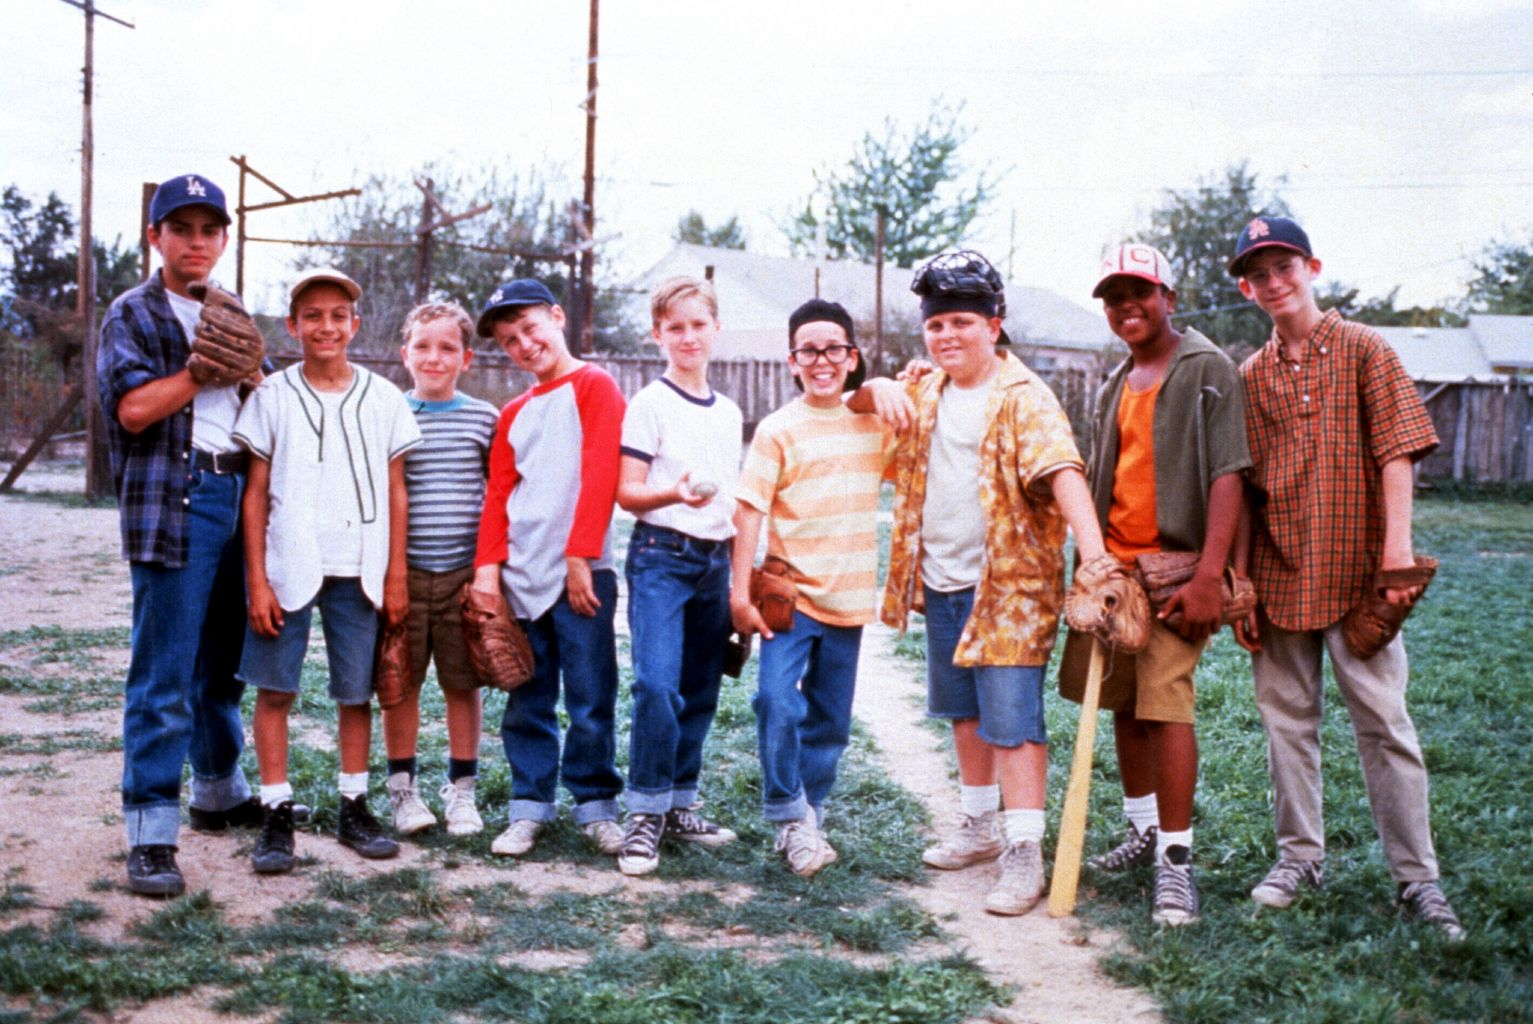 Episode 5: The Sandlot